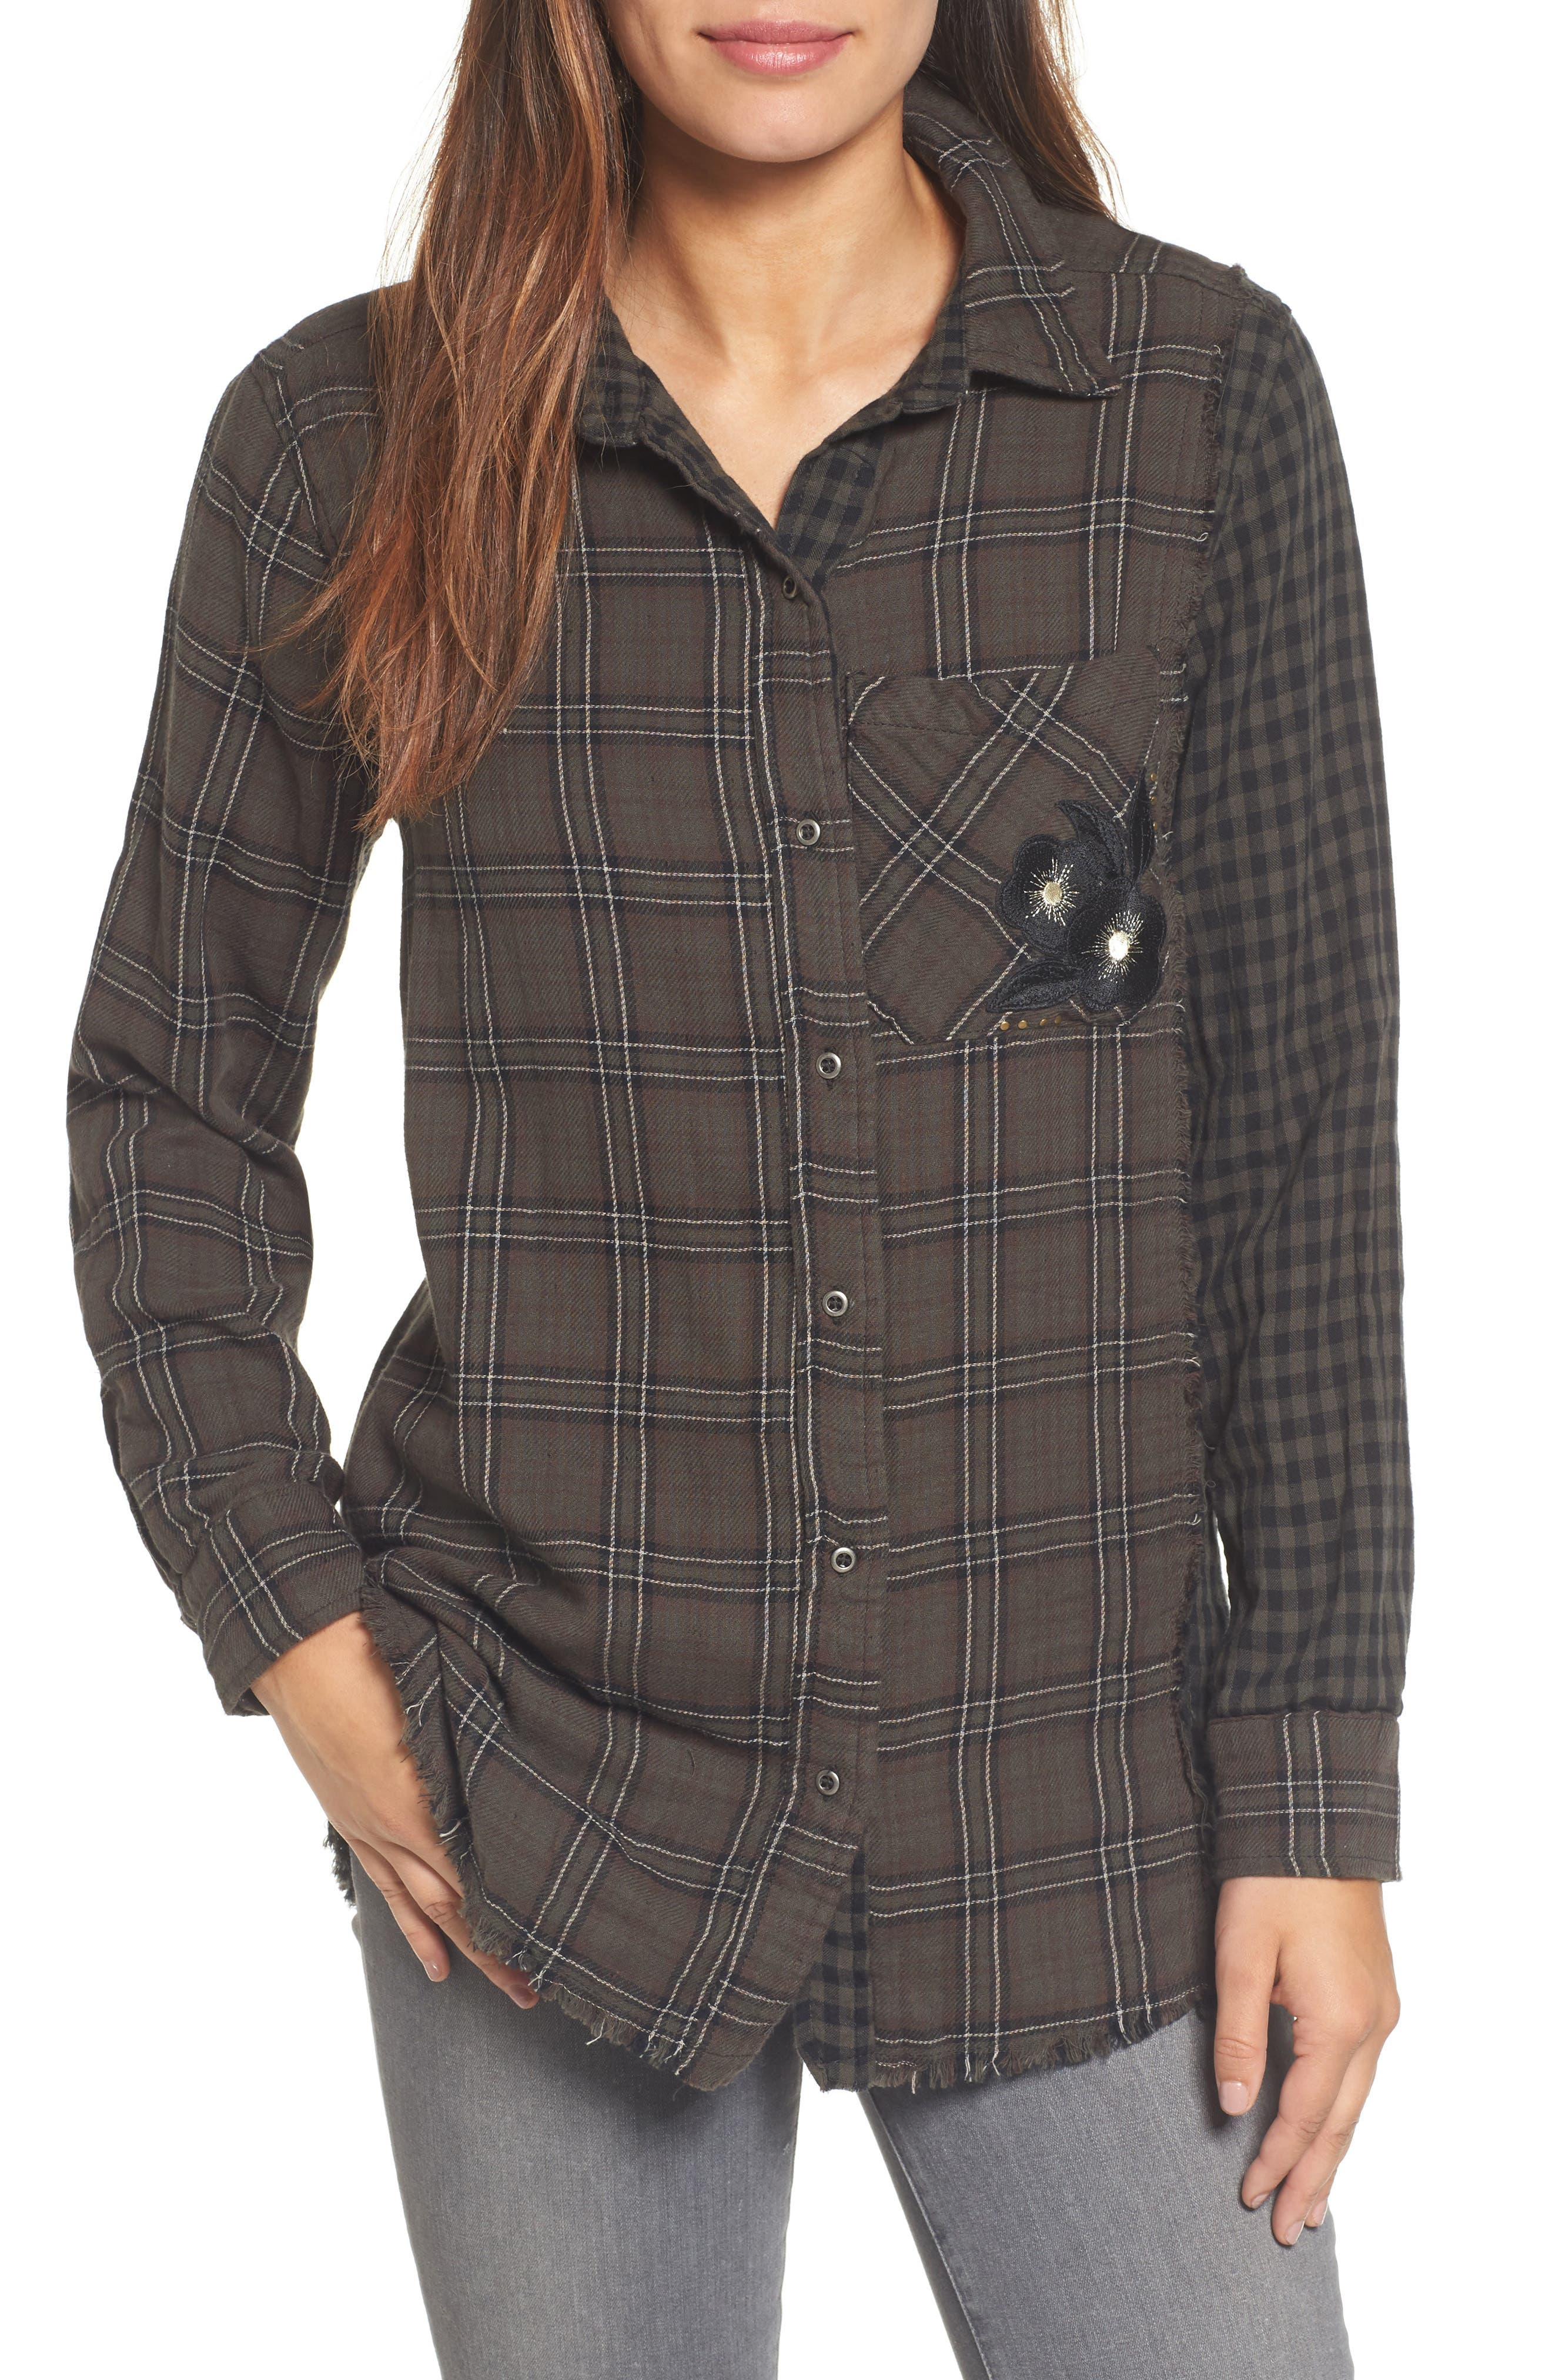 Wit & Wisdom Contrast Sleeve Button-Down Top (Nordstrom Exclusive)